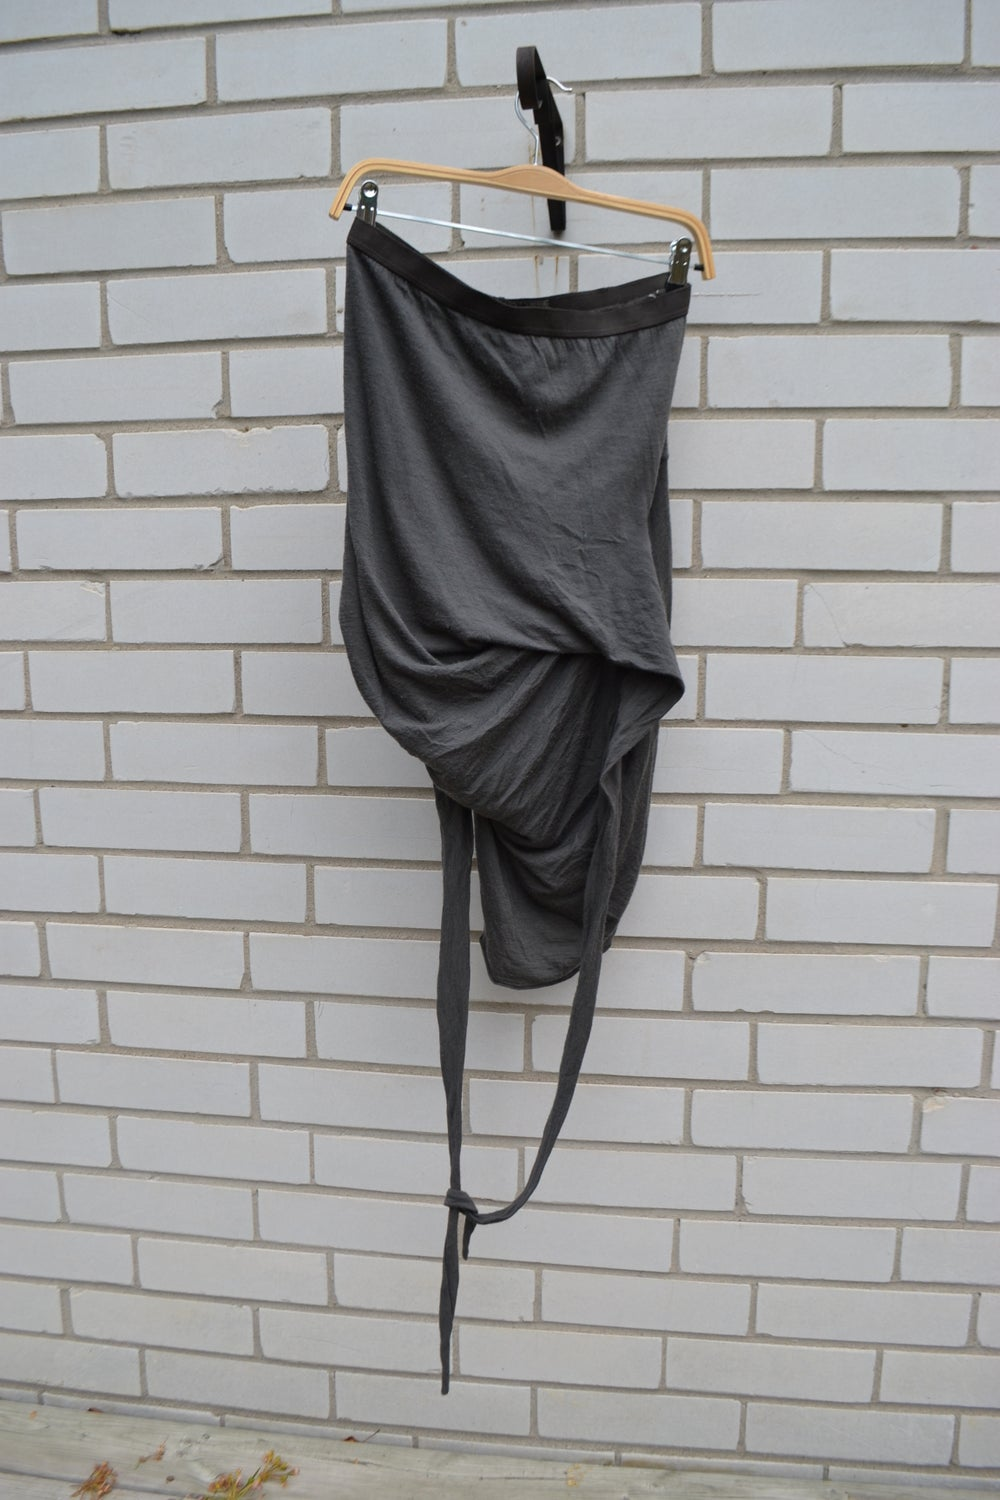 Image of Rick Owens Fall-Winter 2006 'Dustulator' Skirt